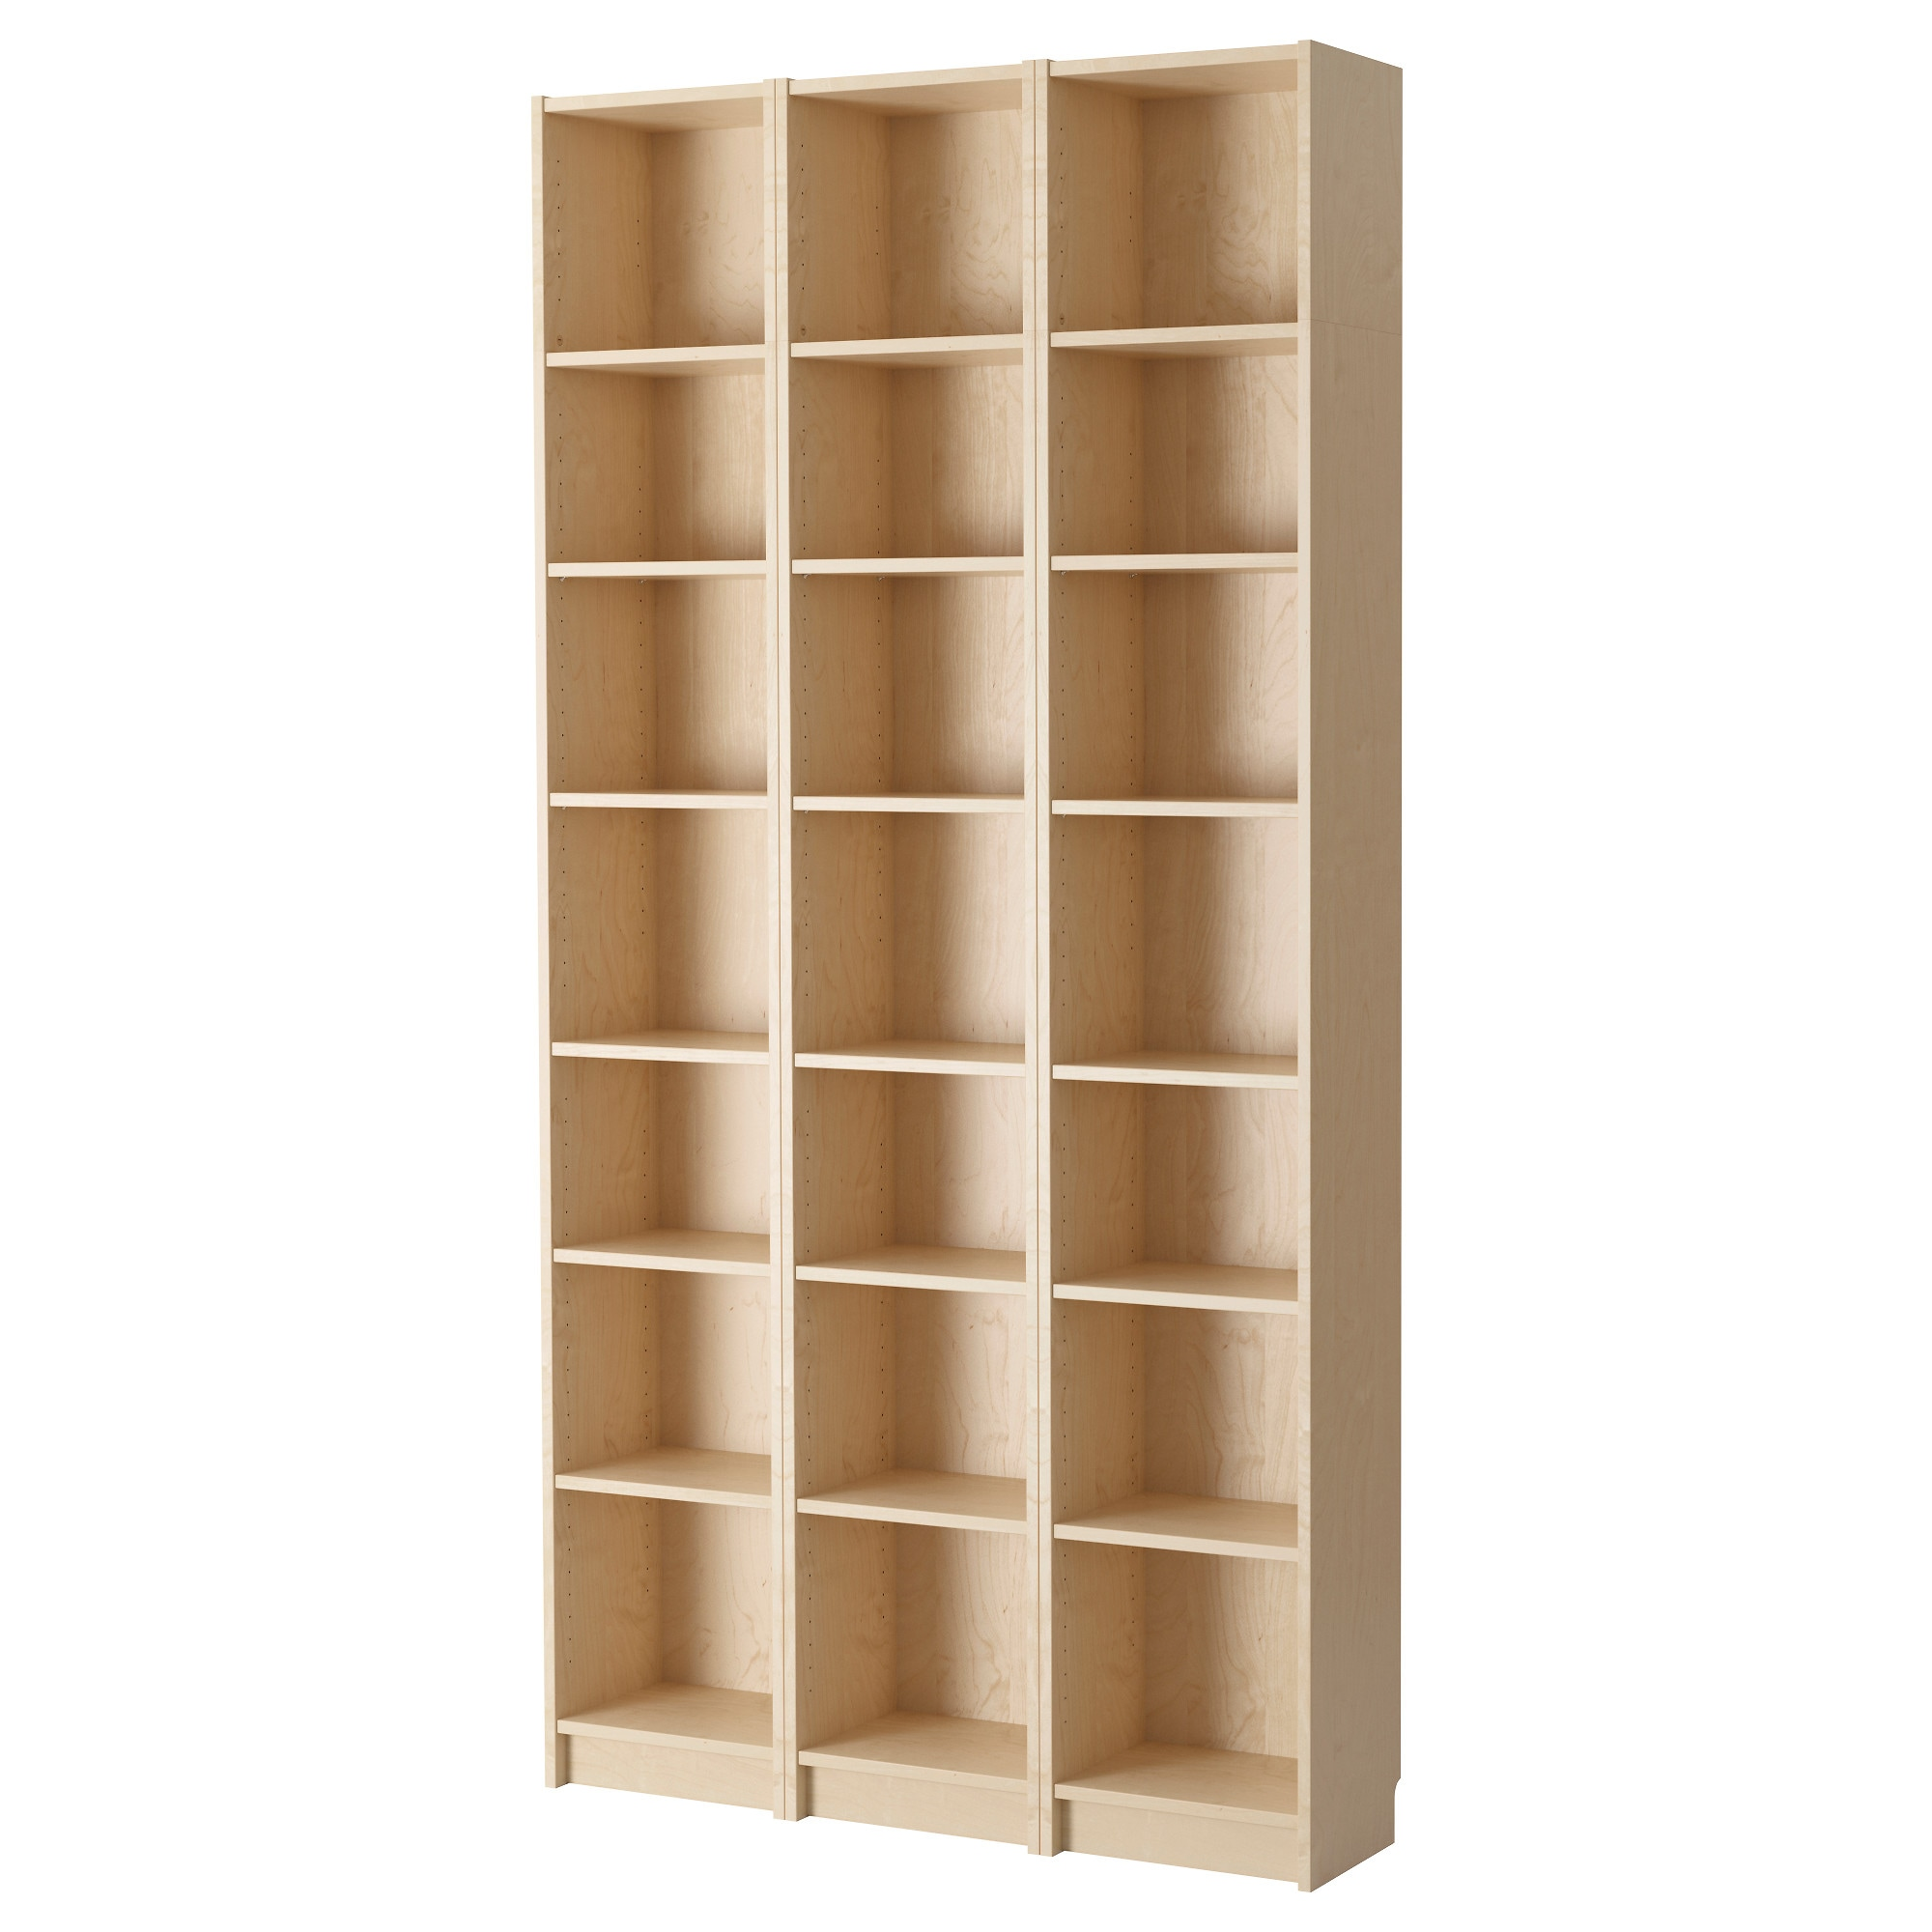 BILLY Series IKEA - Ikea billy bookshelves